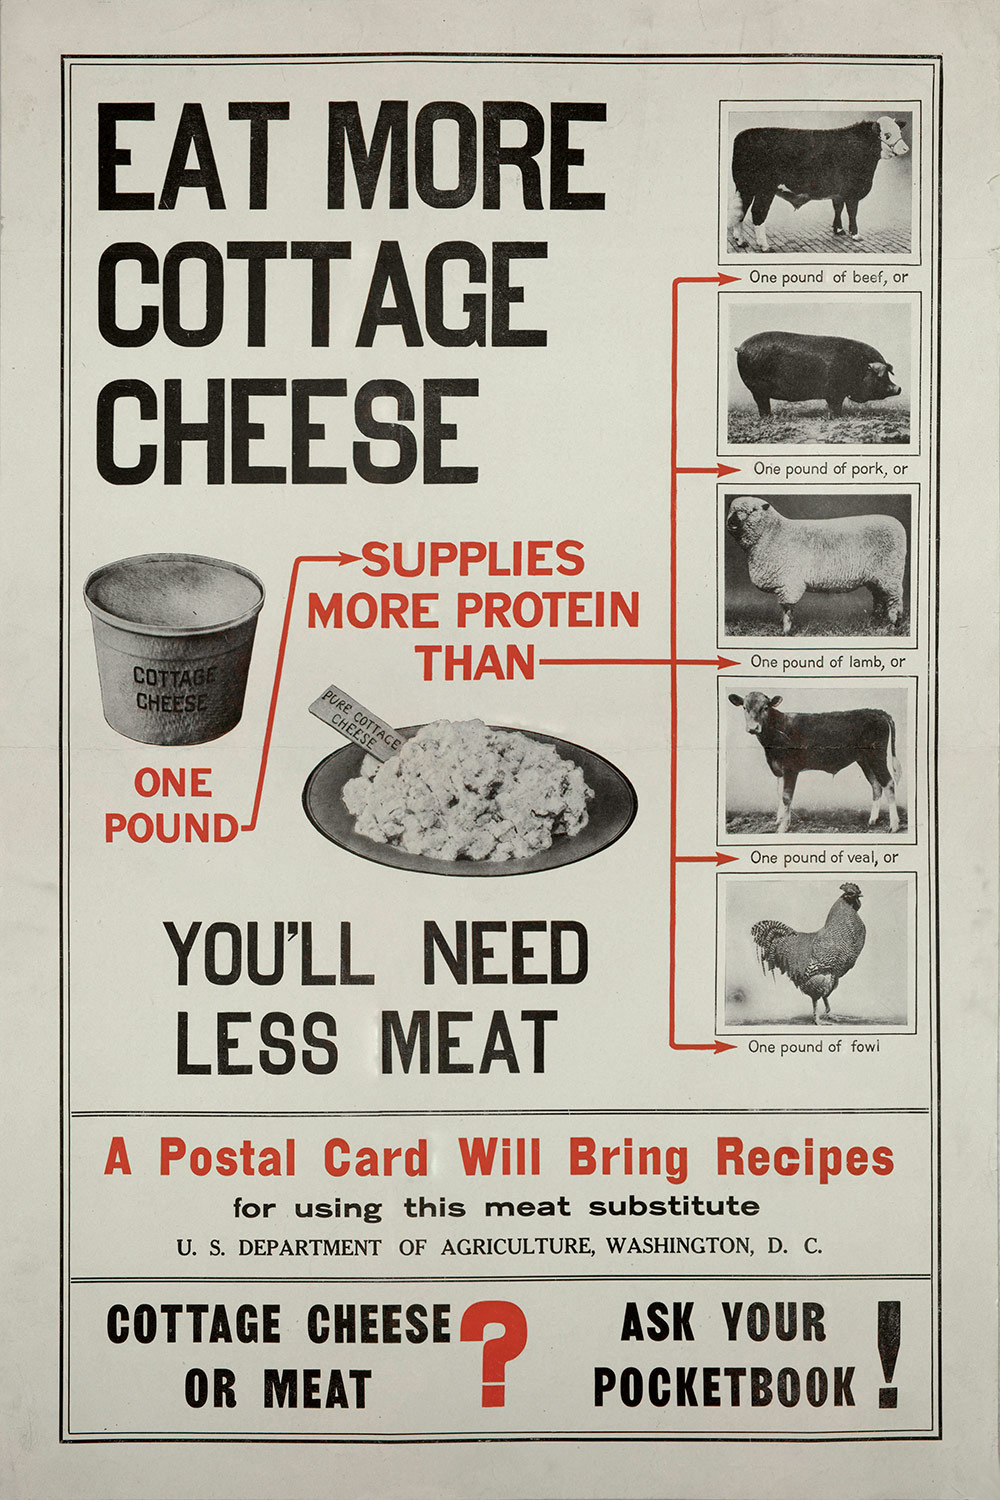 Vintage-Rural-Advertising-Eat-More-Cottage-Cheese.jpg